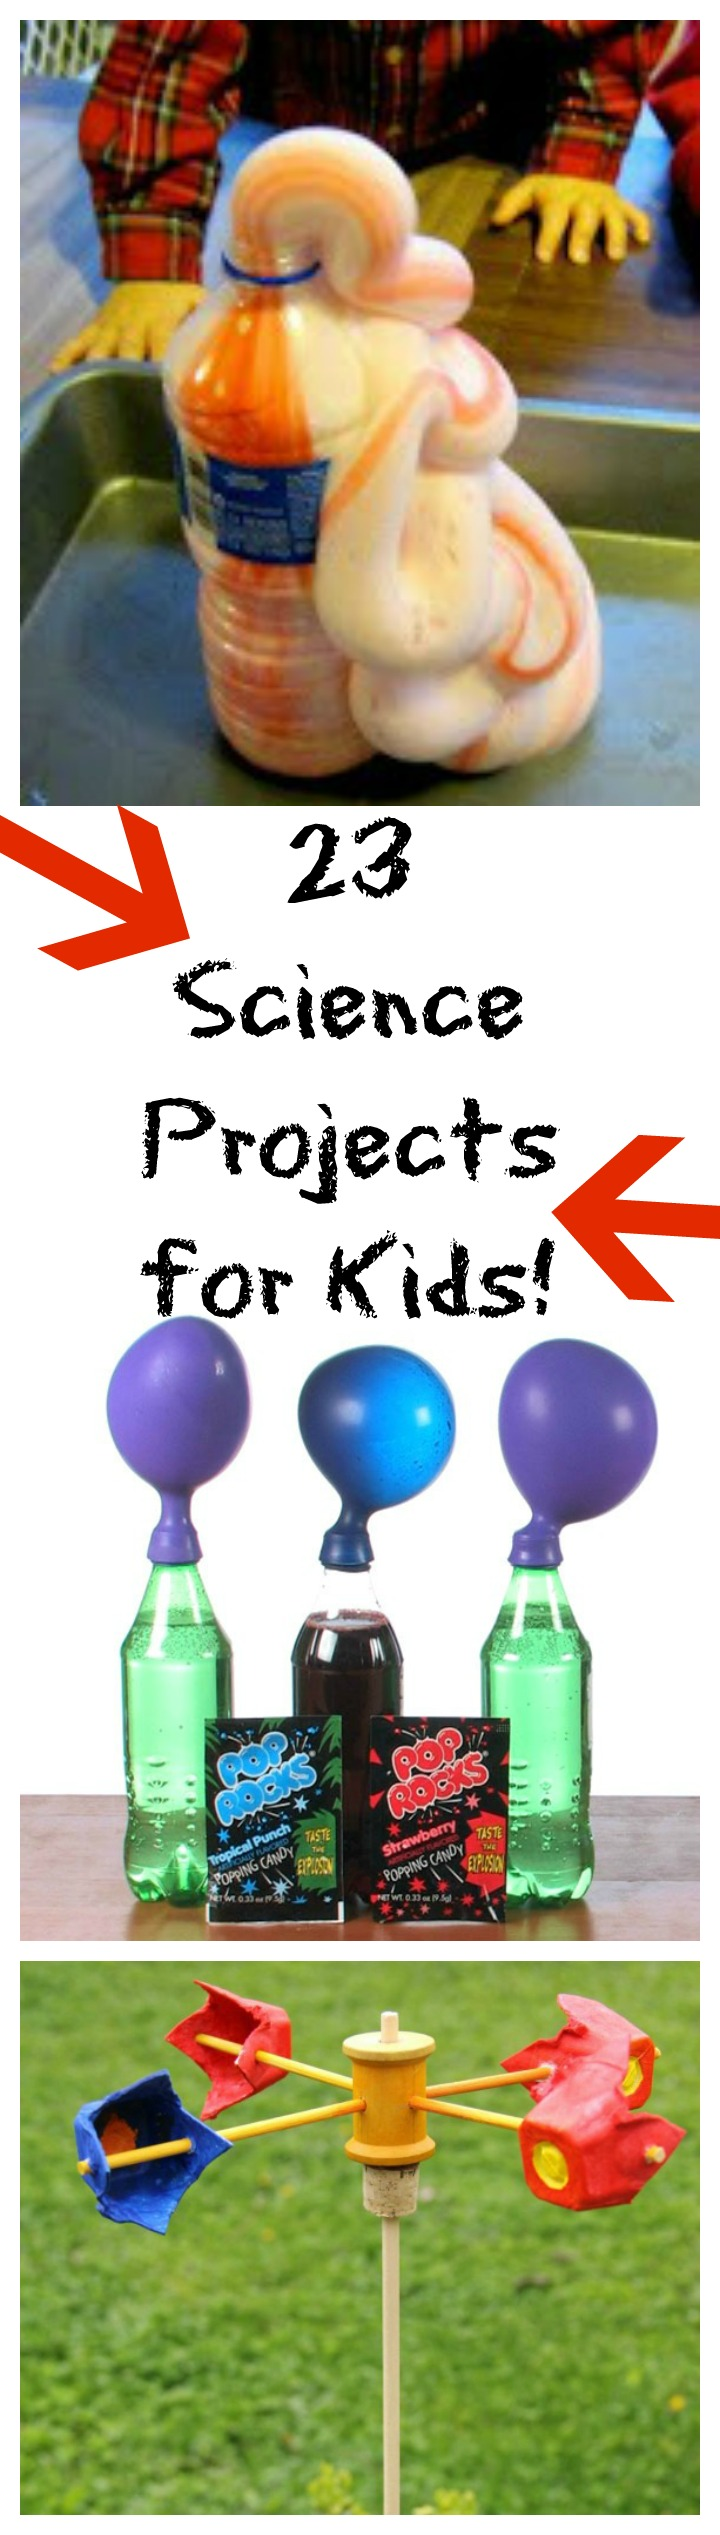 science projects cool kid experiment friendly things summer looking fun popcorn